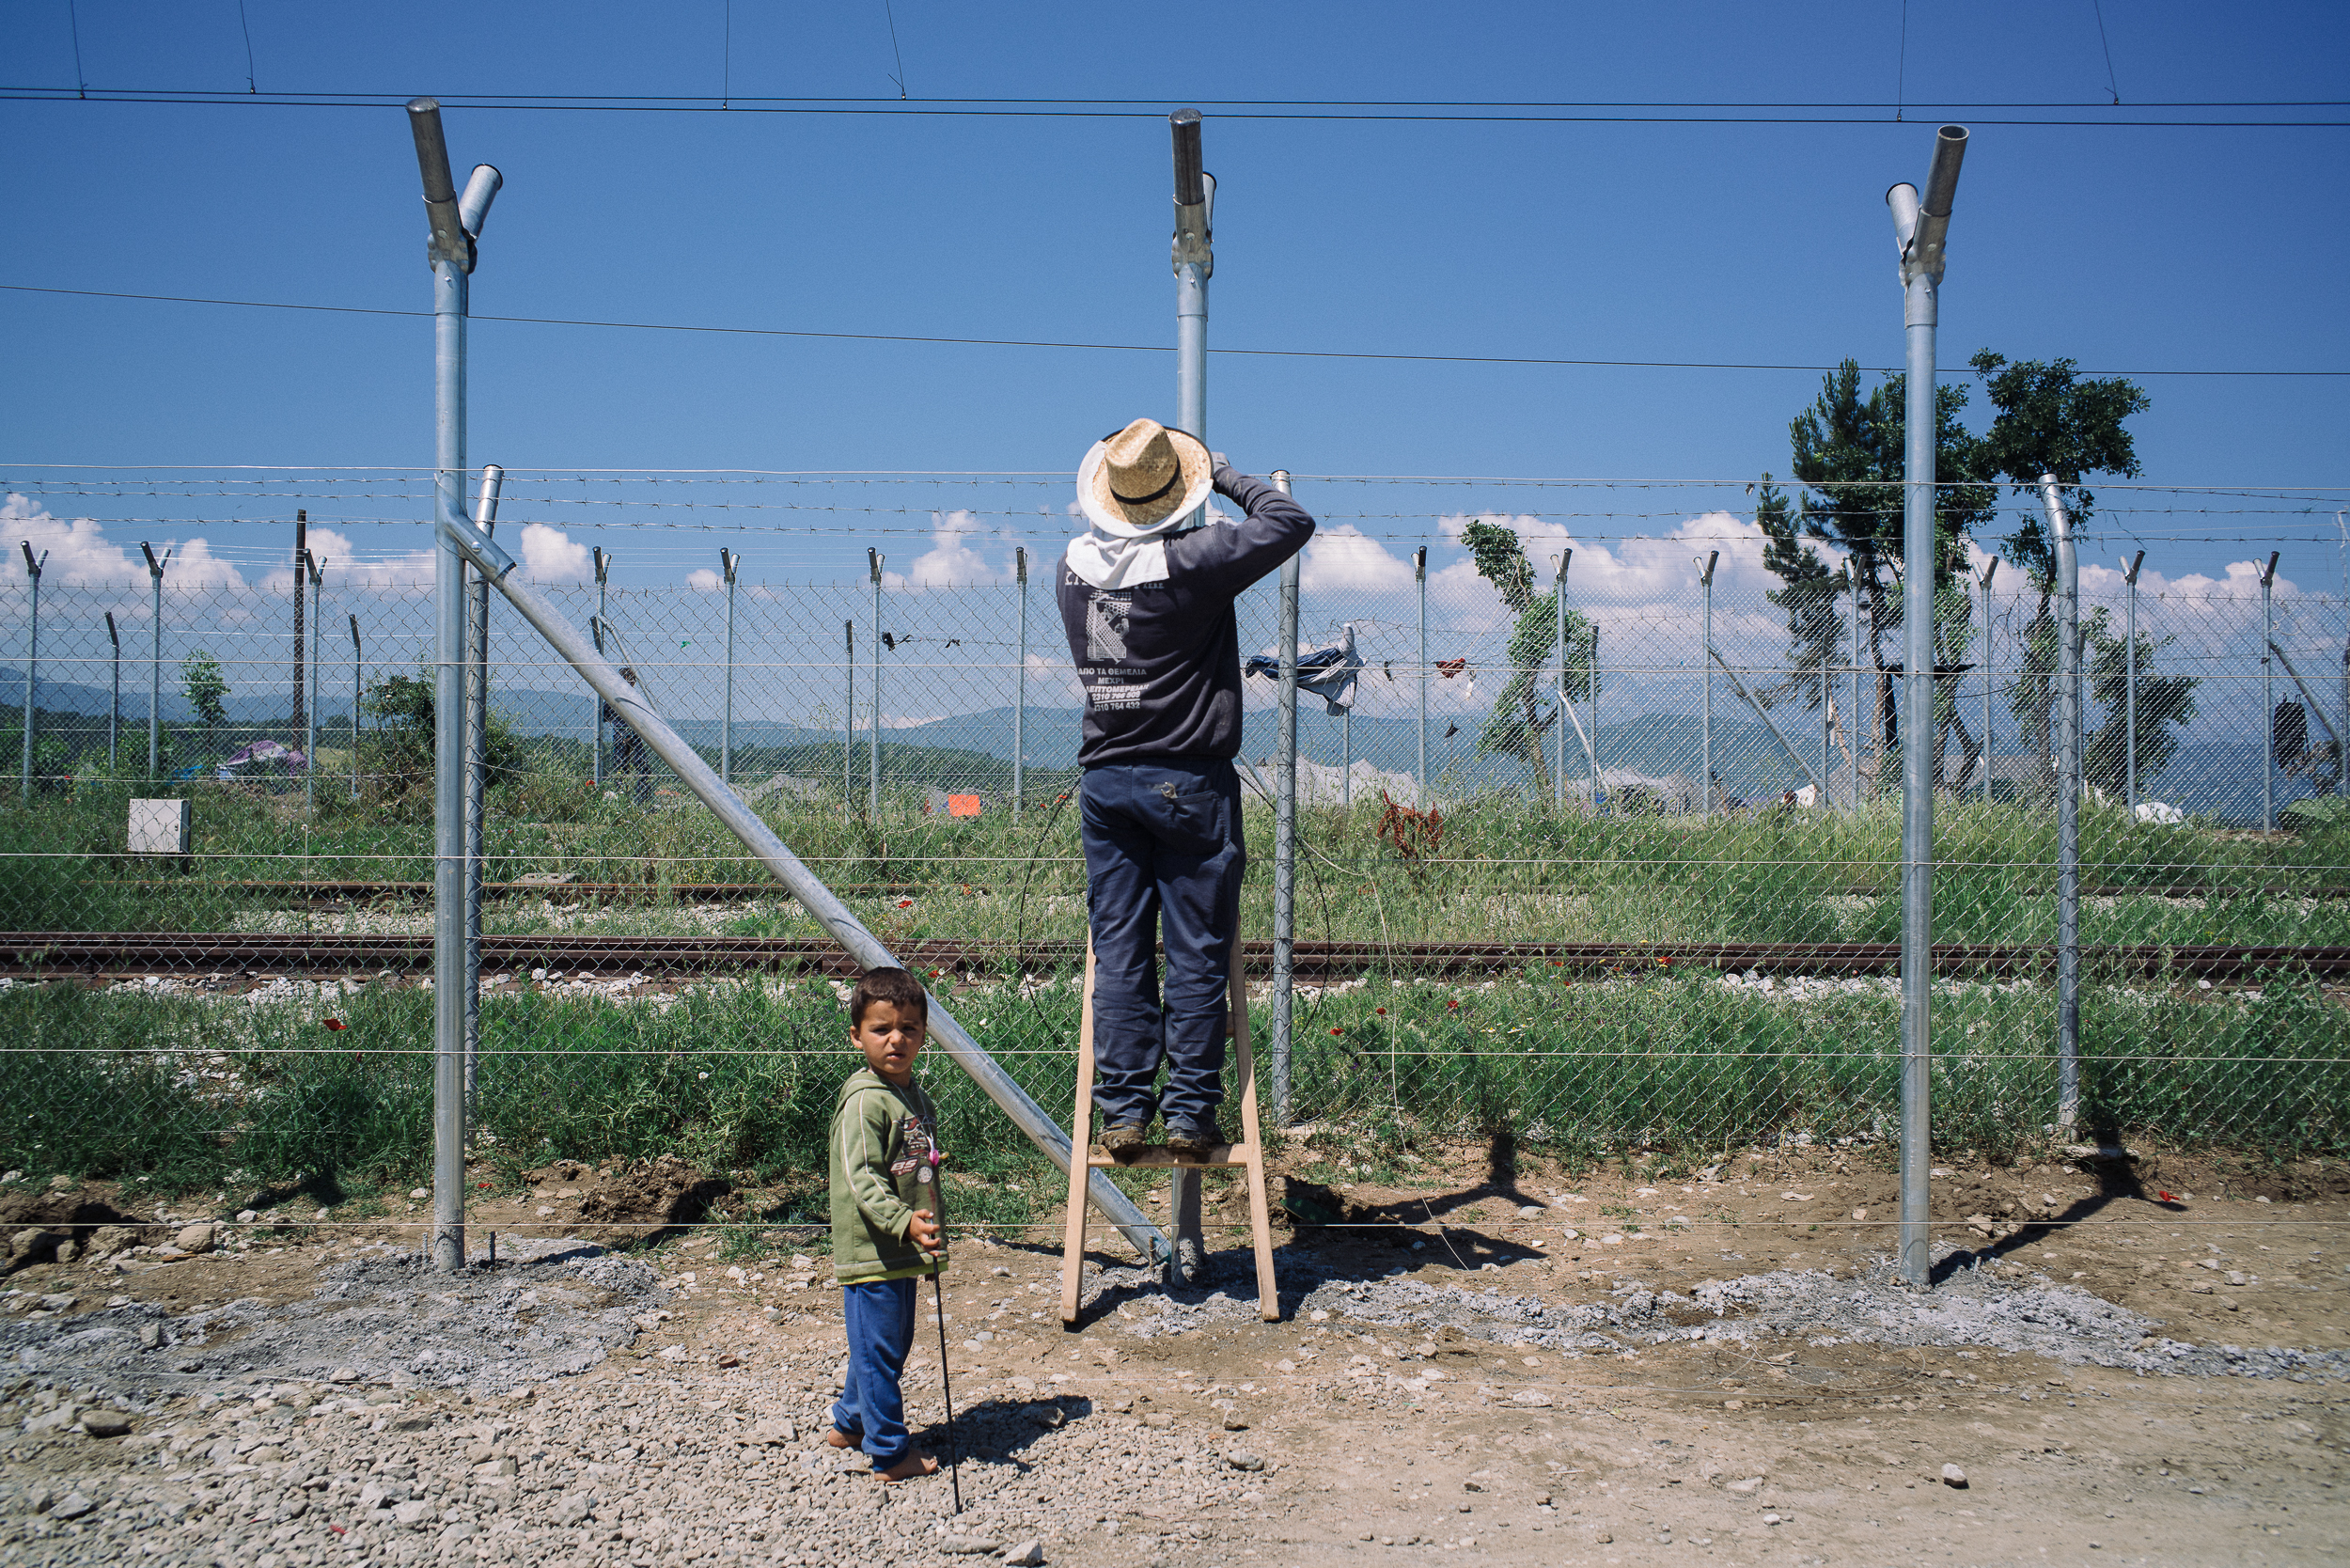 A young Syrian boy innocently watches a man fixing the fence that separates Greece and Macedonia in Idomeni camp.